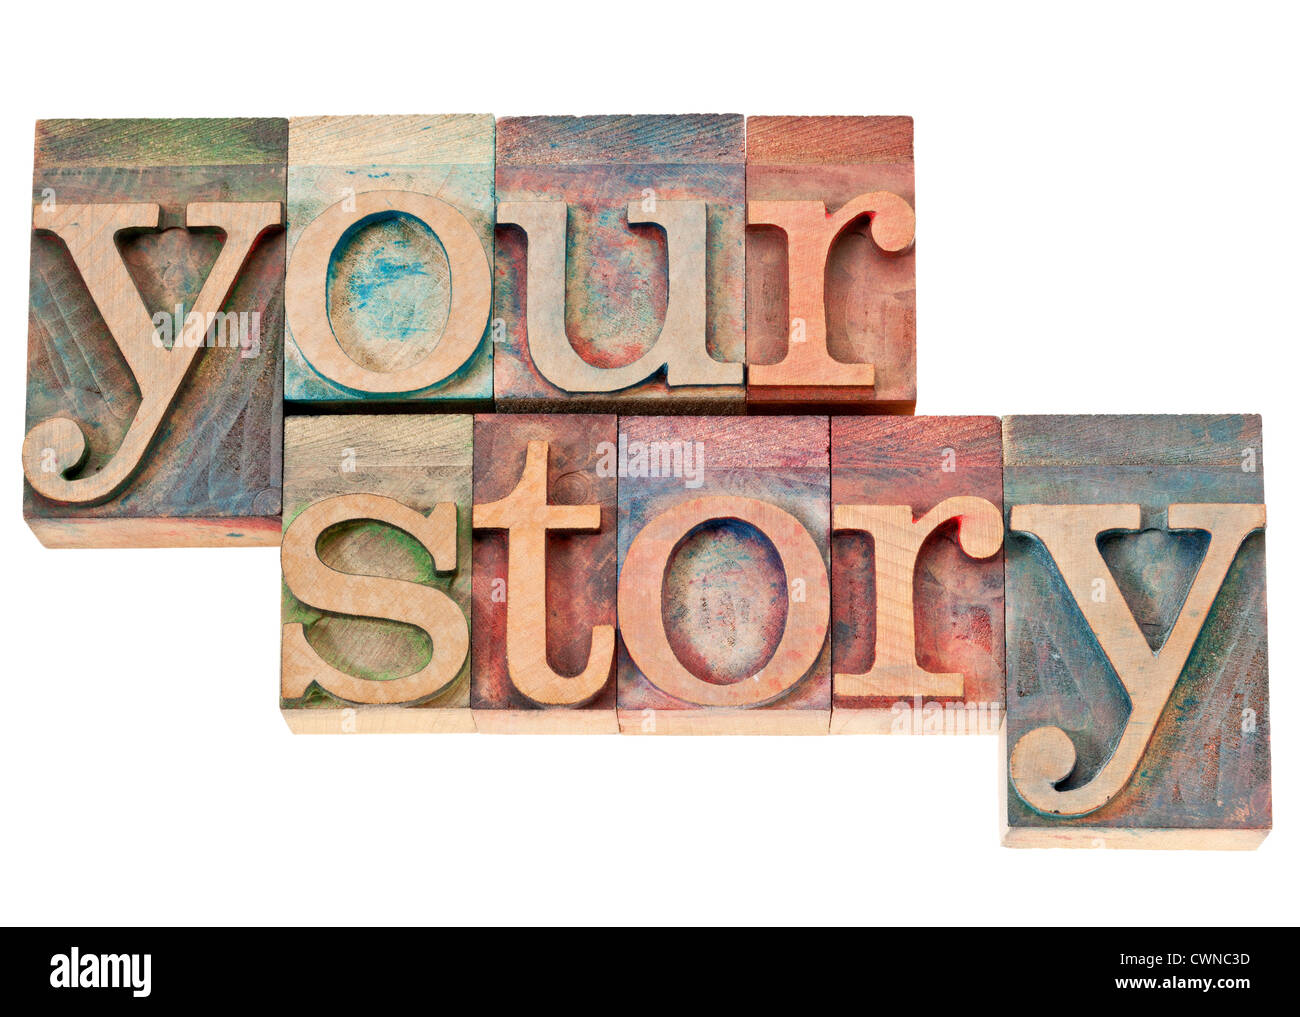 your story - isolated words in vintage letterpress wood type stained by color inks - Stock Image